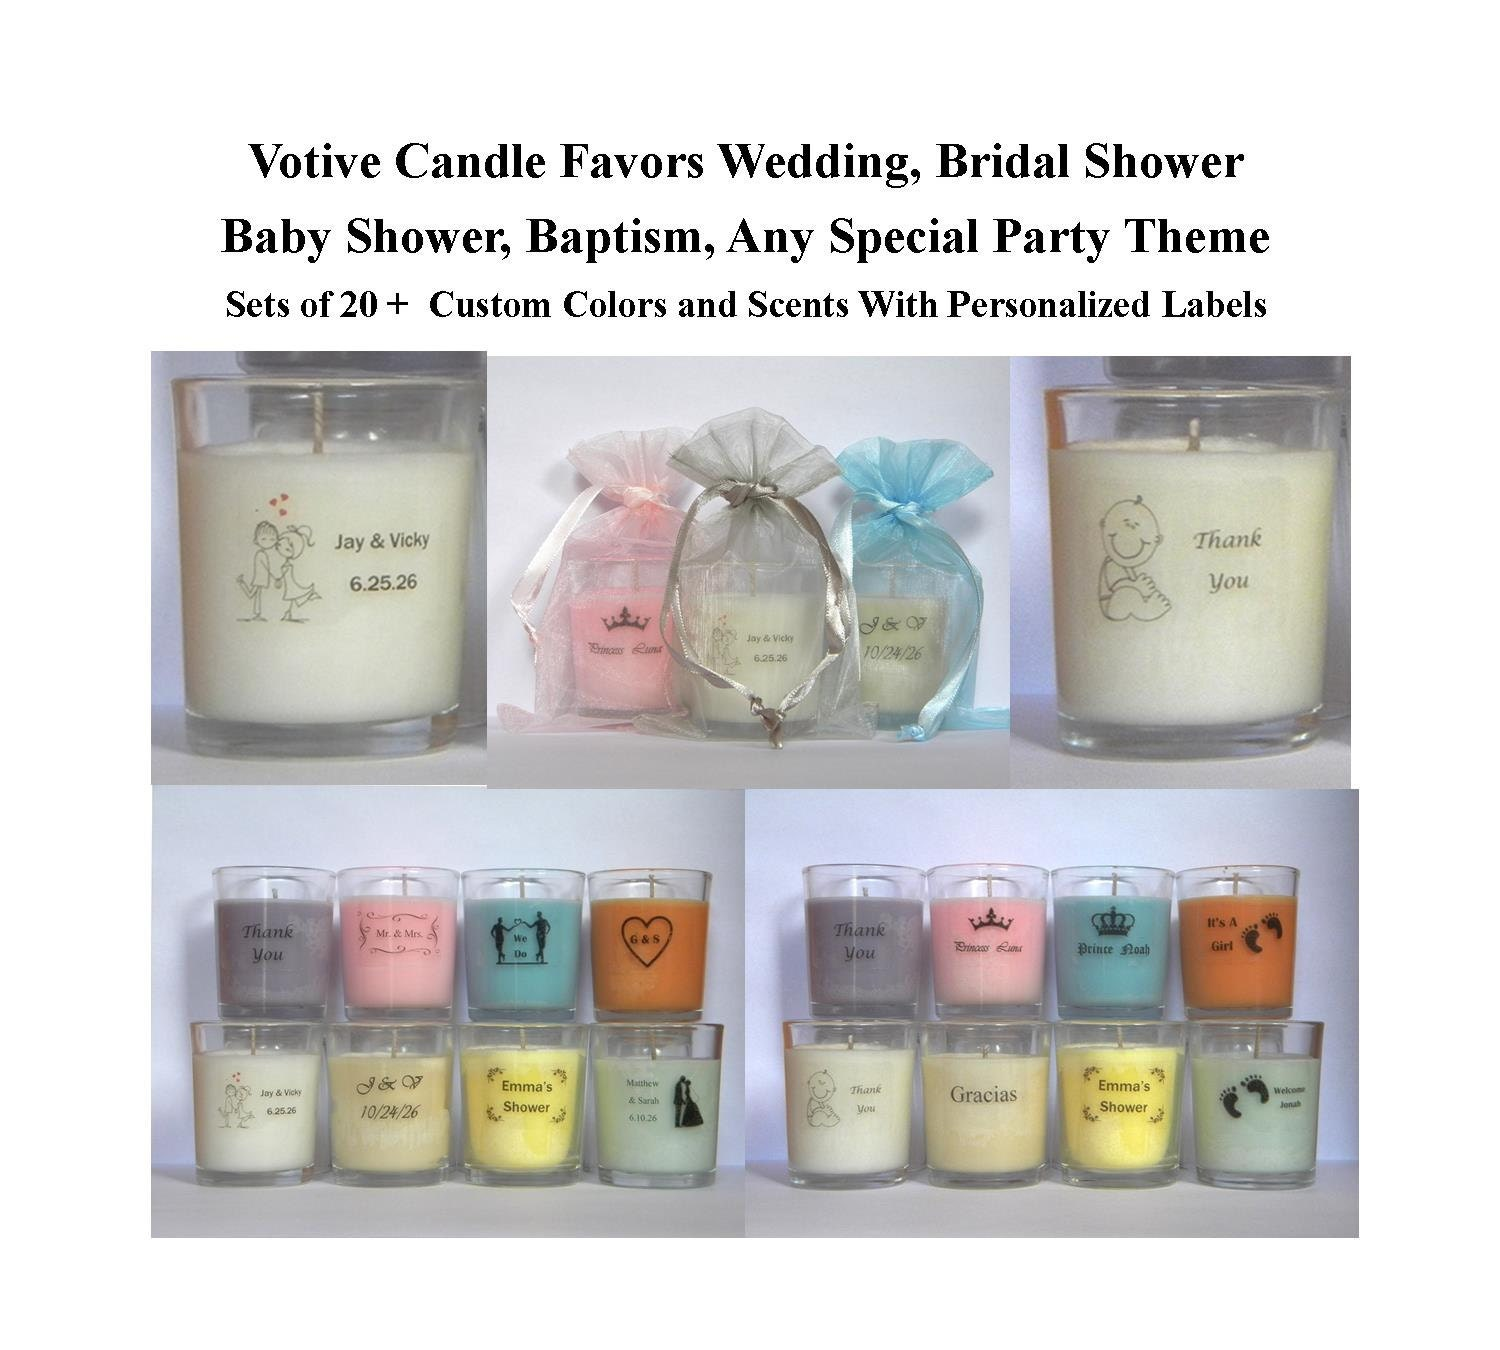 Bridal Shower Favor Sayings For Candles : Wedding Candle Favors Votive Candle Favors Baby Shower